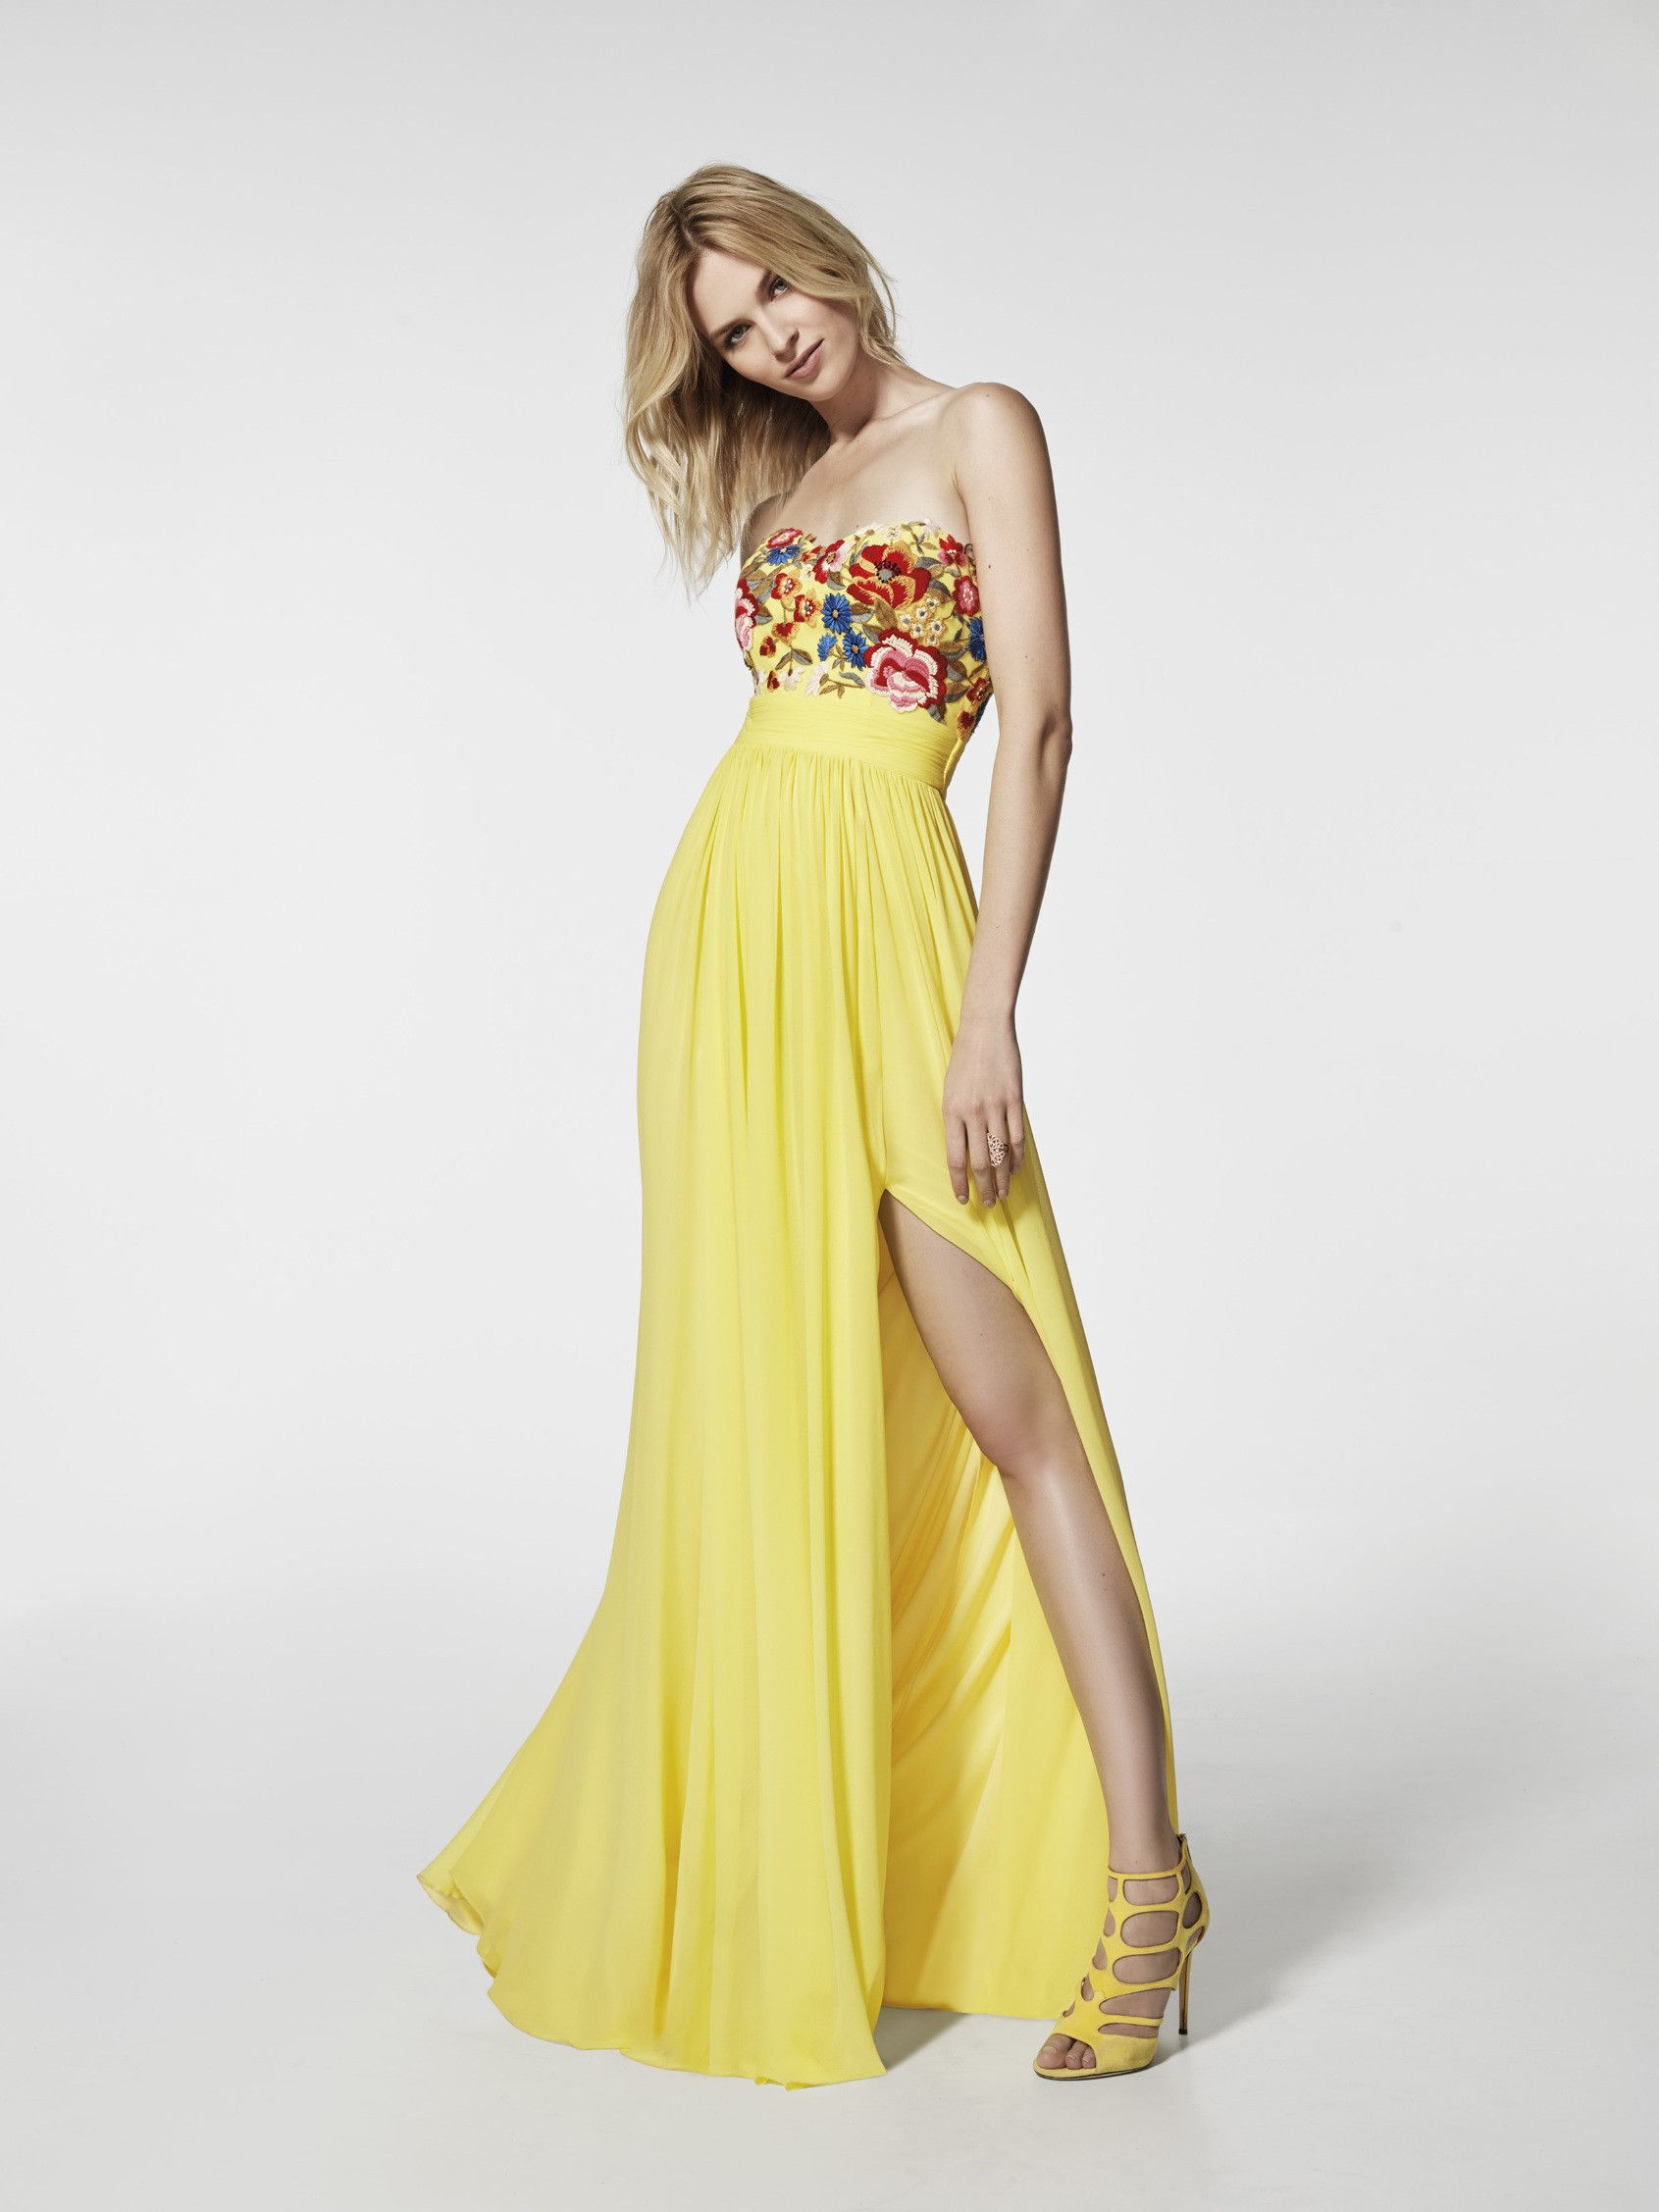 Photo Yellow Cocktail Dress 62036 Vestidos De Fiesta Vestidos De Fiesta 2018 Vestidos De Fiesta Cortos